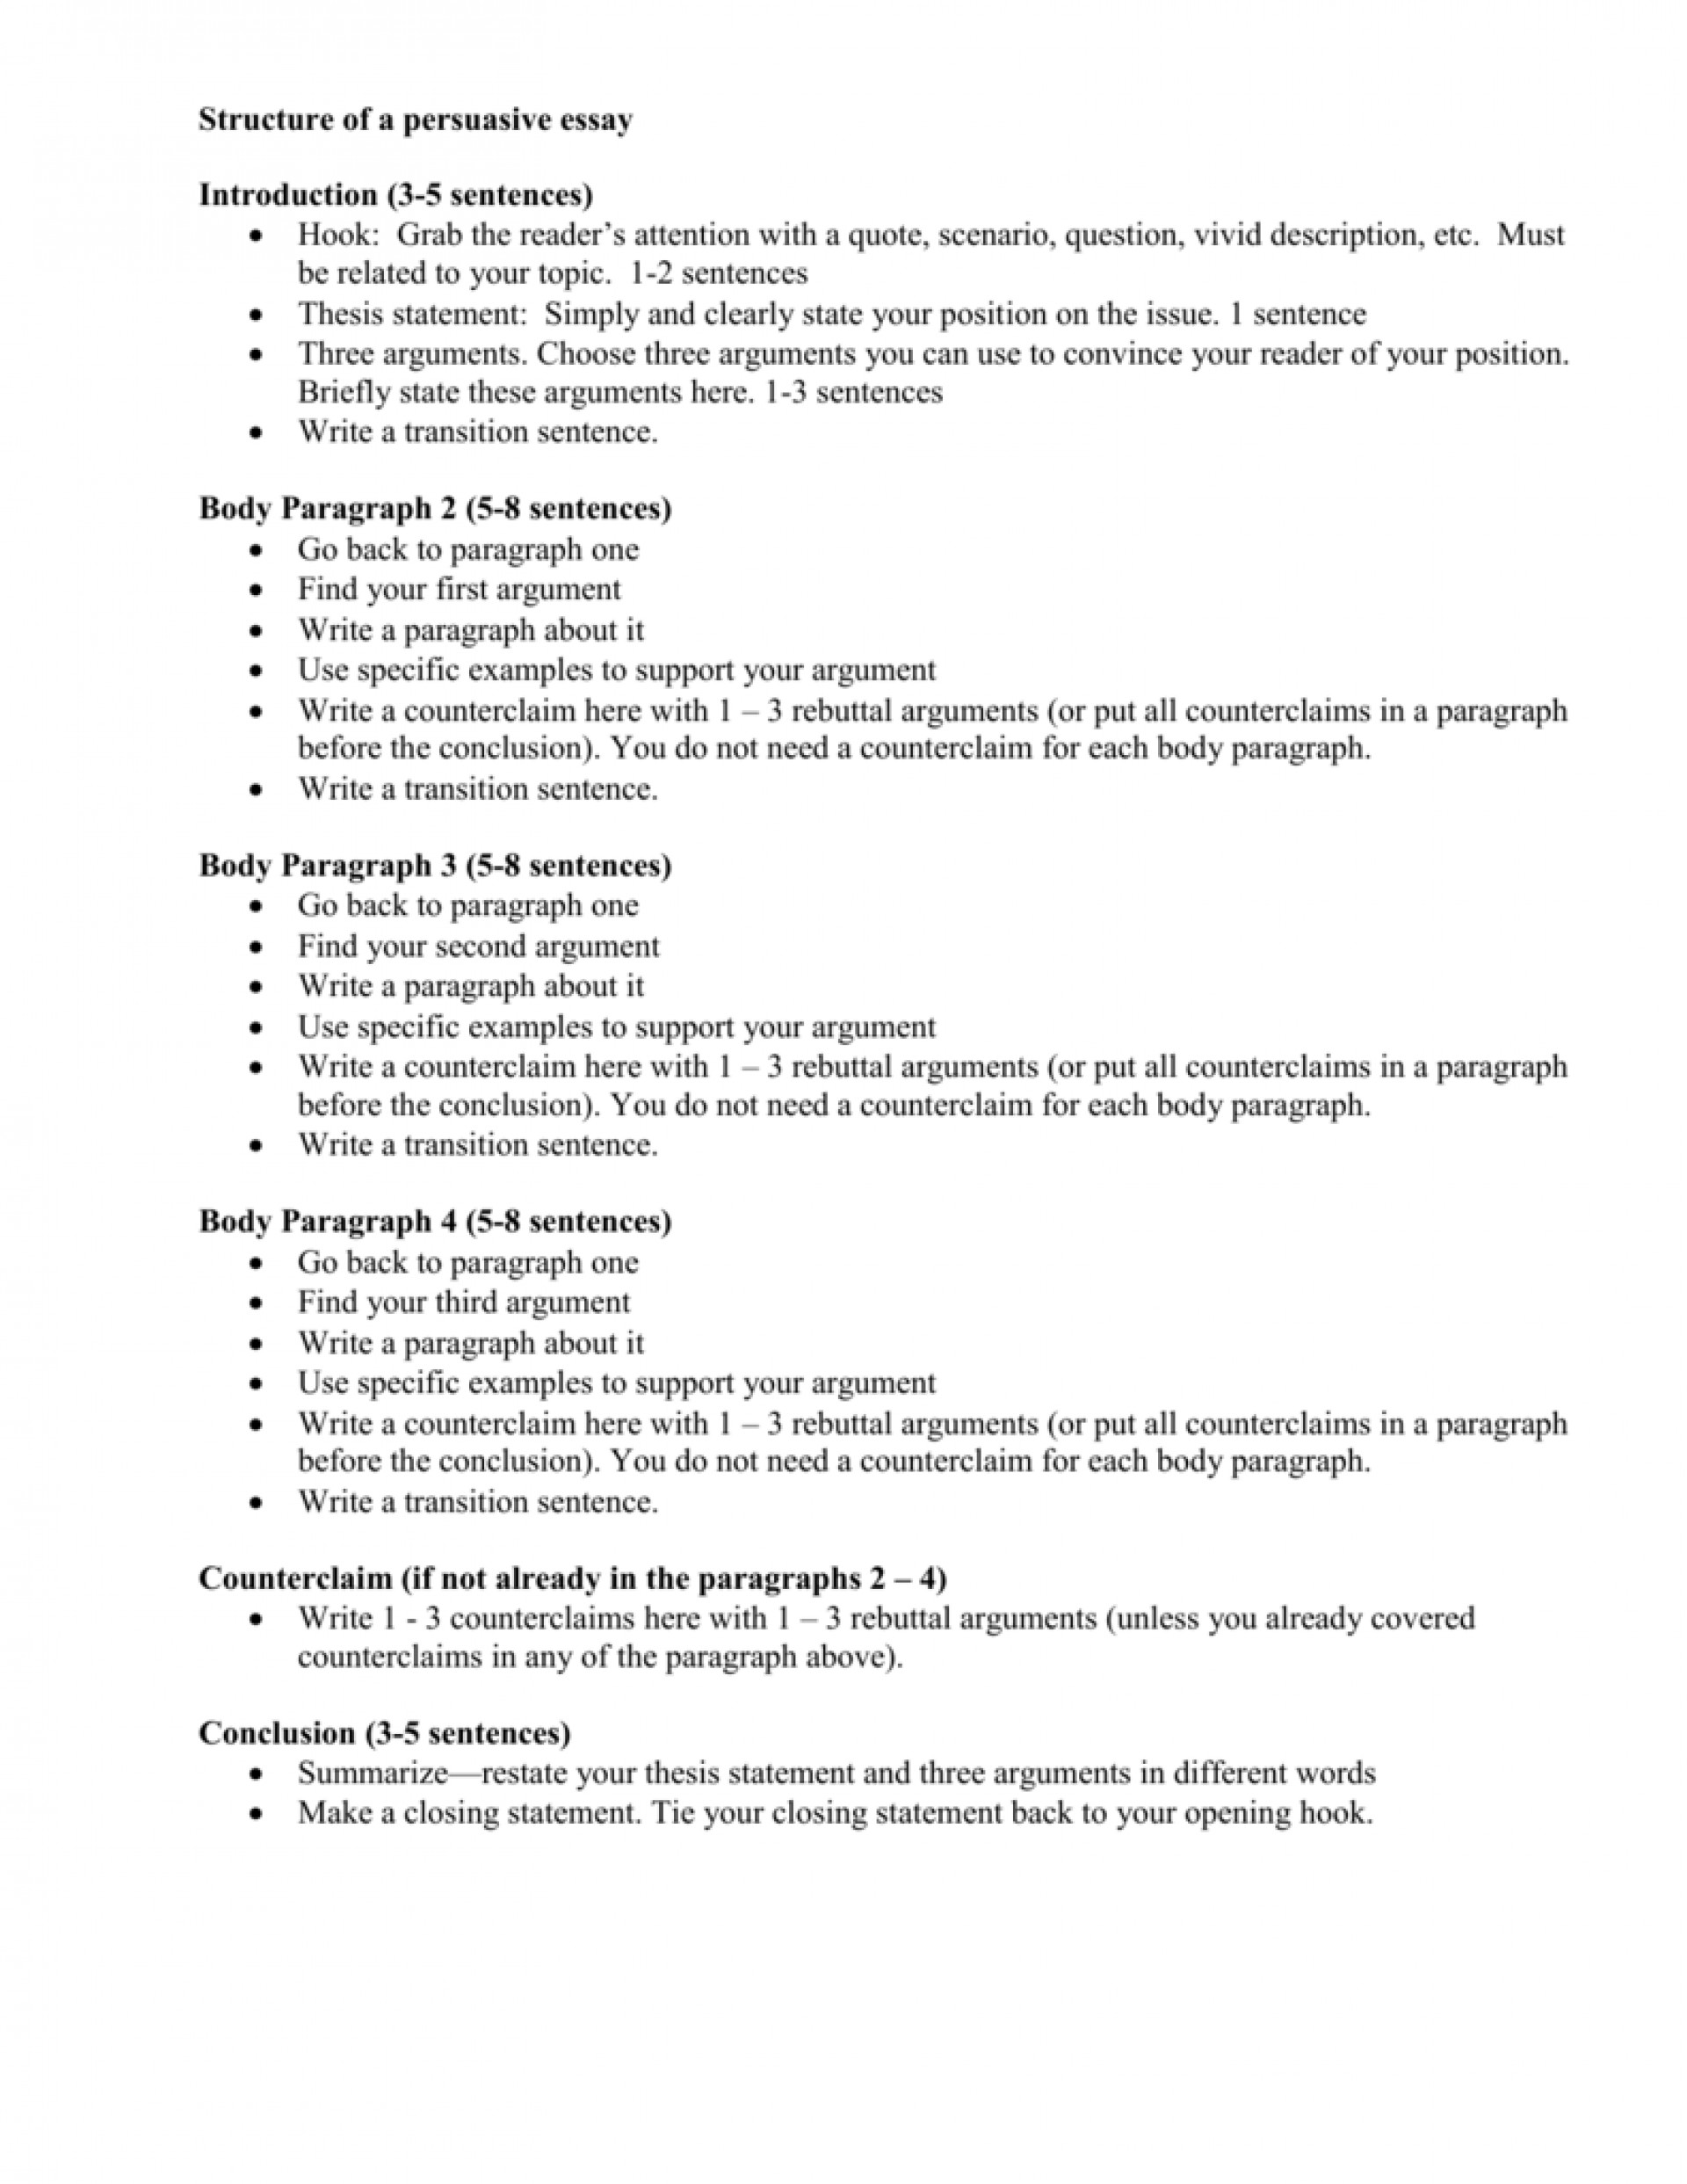 020 Structure Of Five Paragraph Persuasive Essay Closing Sentences For Essays 007464539 1 Conclusion Archaicawful Sentence Examples 1920